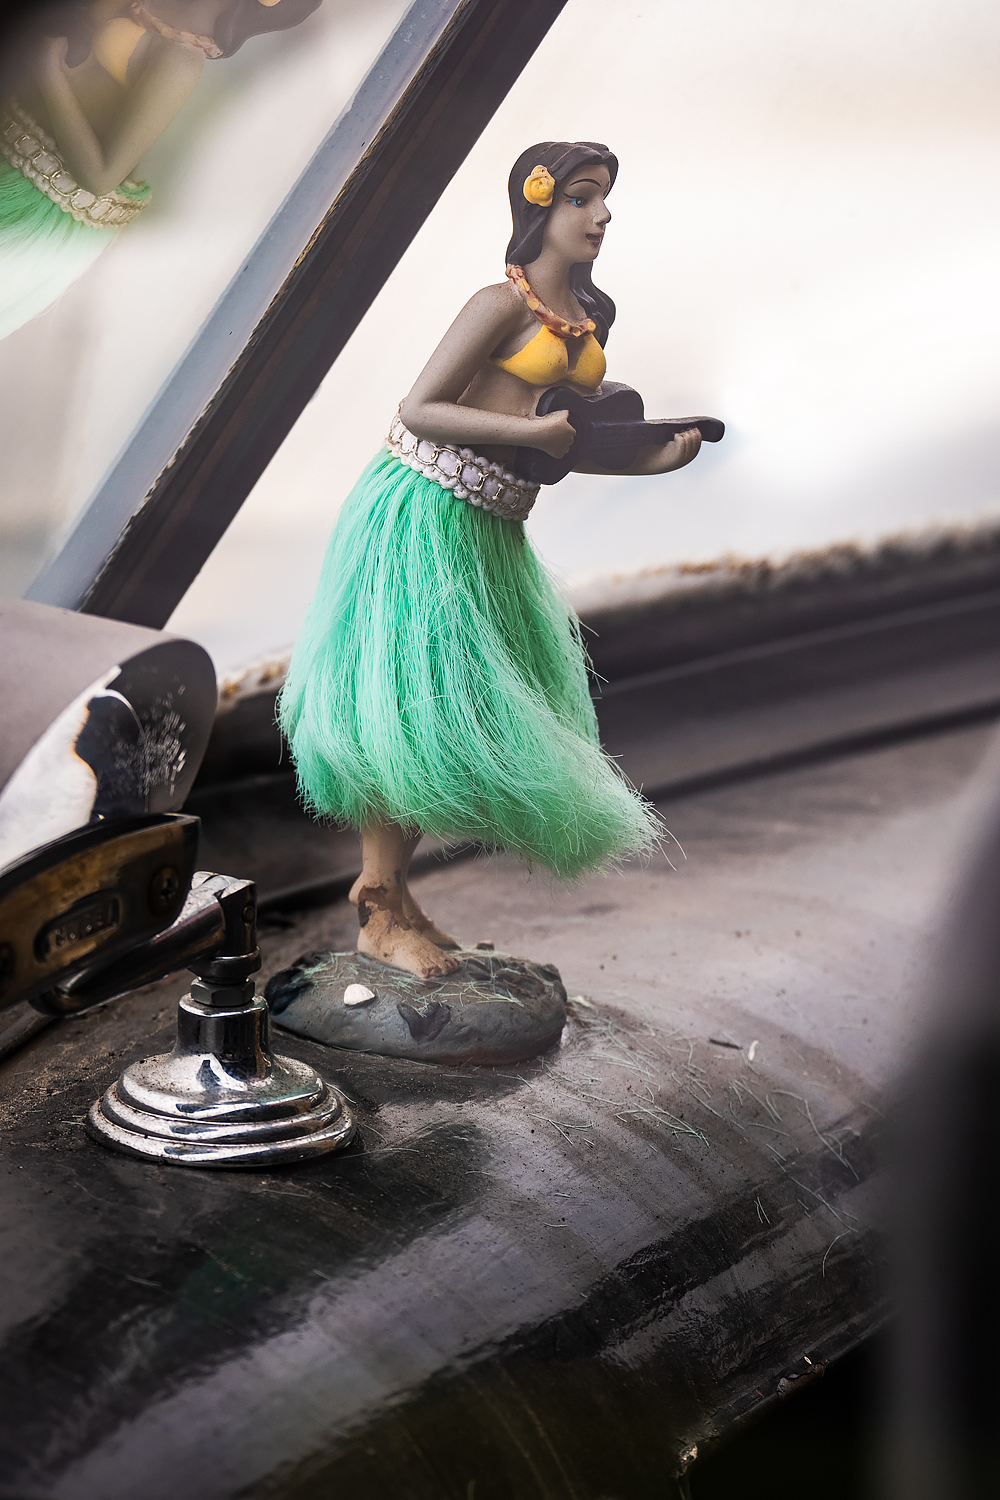 Hula girl, dancing on the dashboard – Fujifilm X-Pro2 w/55-200mm